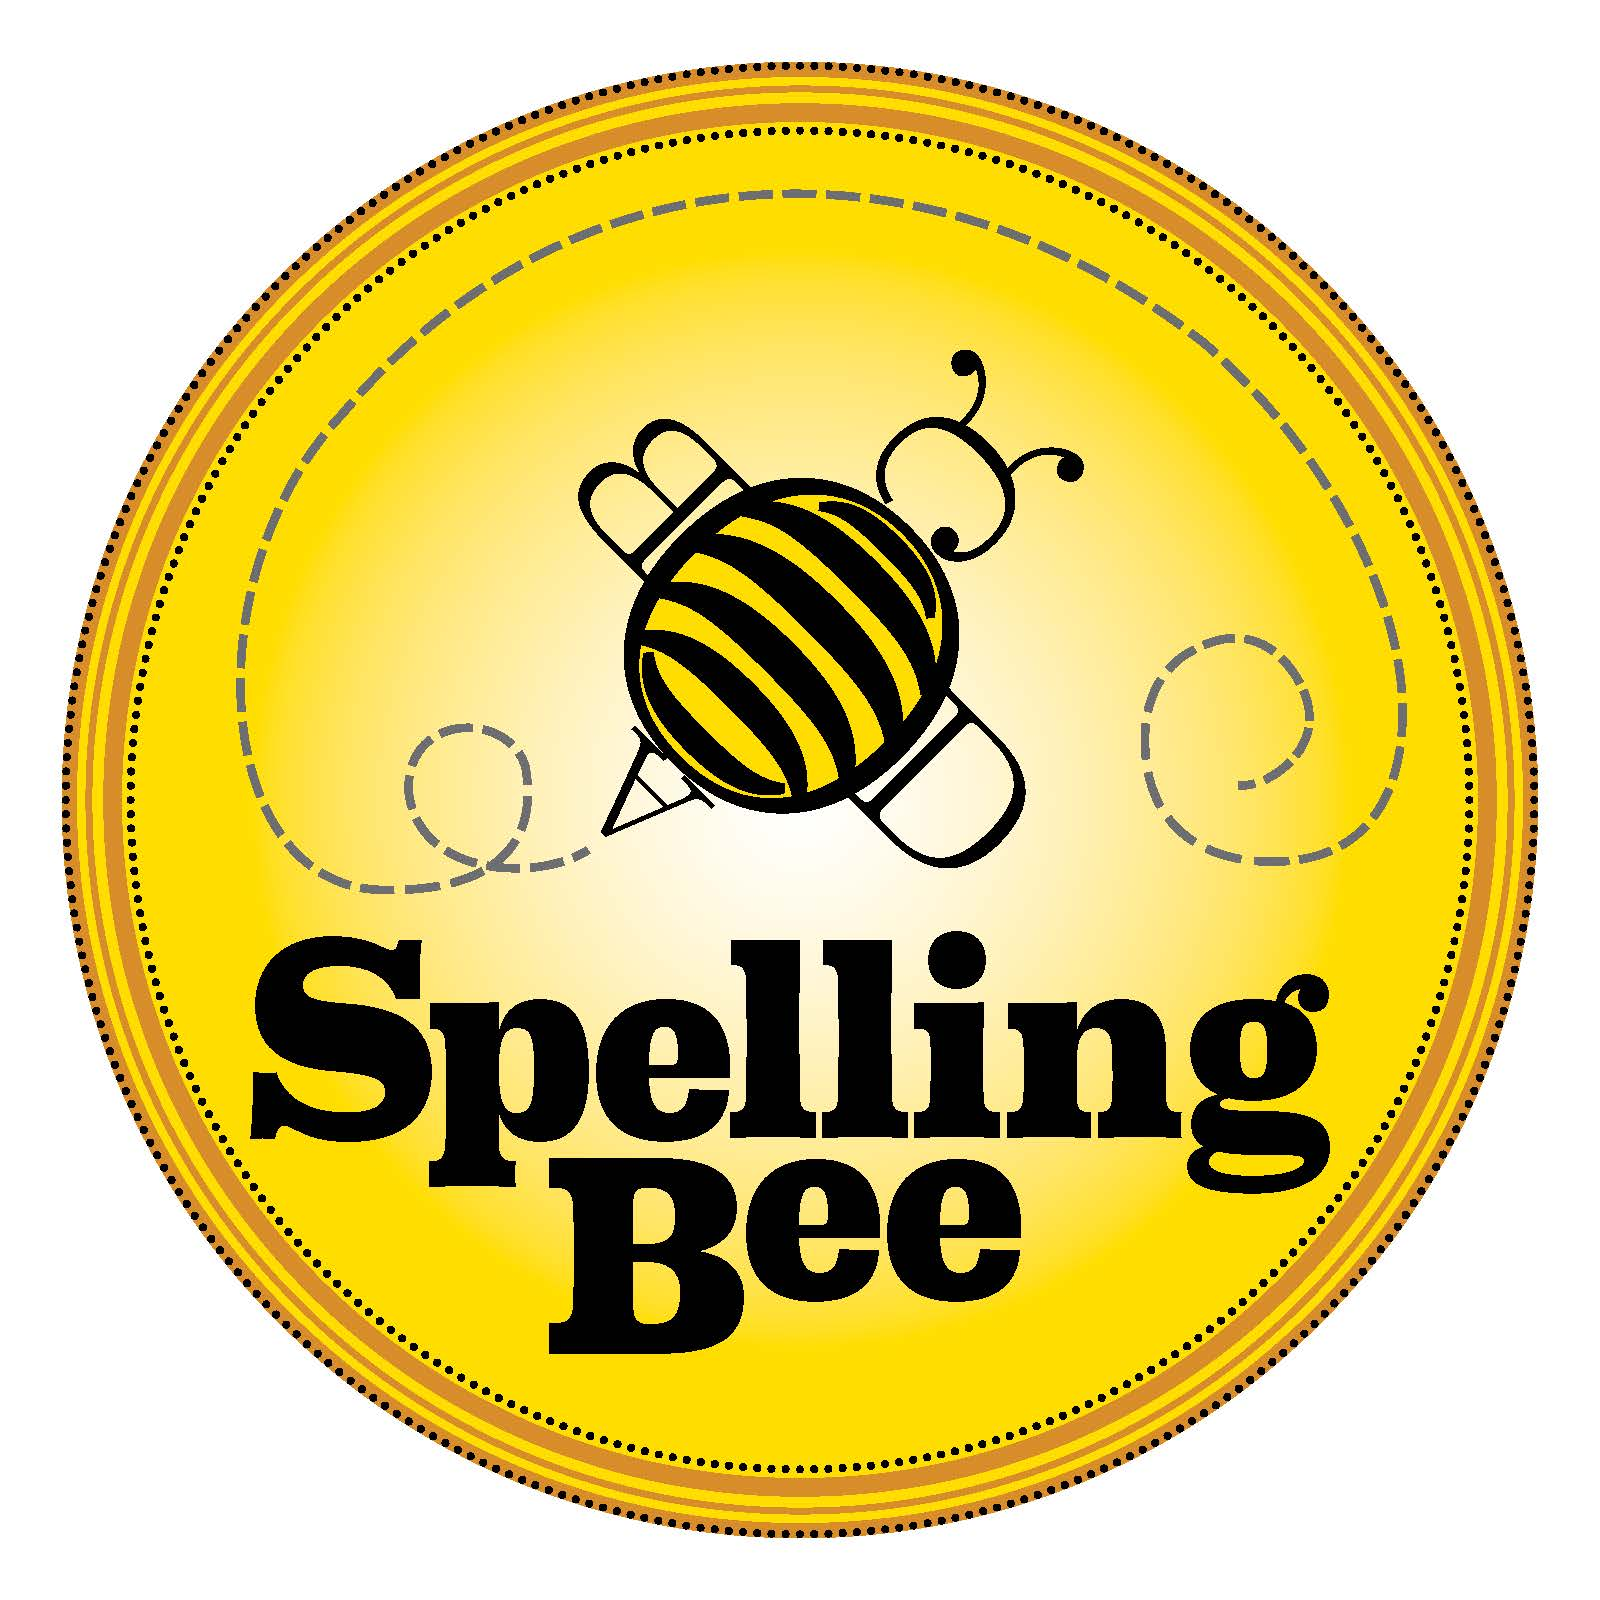 Clipart Of Spelling Bee.